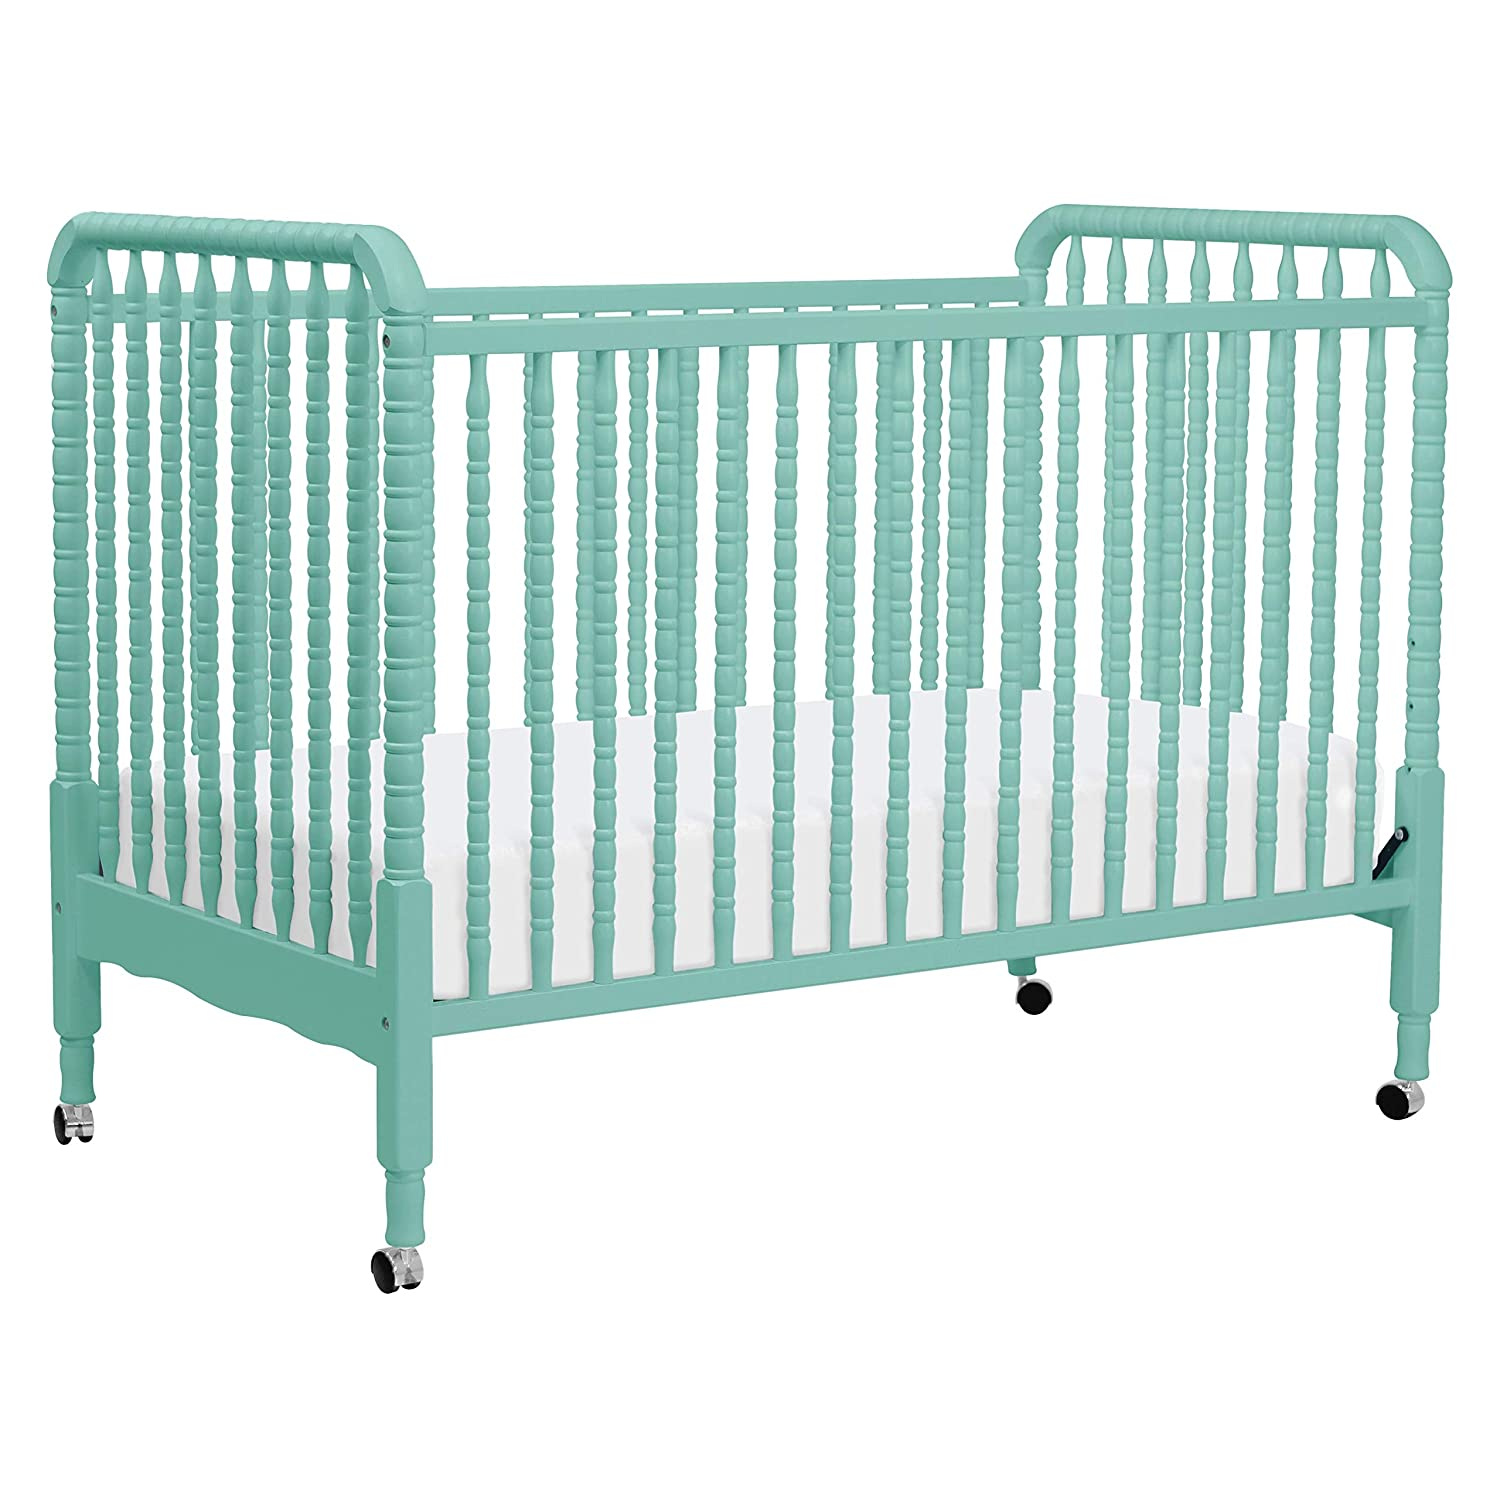 DaVinci Jenny Lind 3-in-1 Convertible Portable Crib in Lagoon – 4 Adjustable Mattress Positions, Greenguard Gold